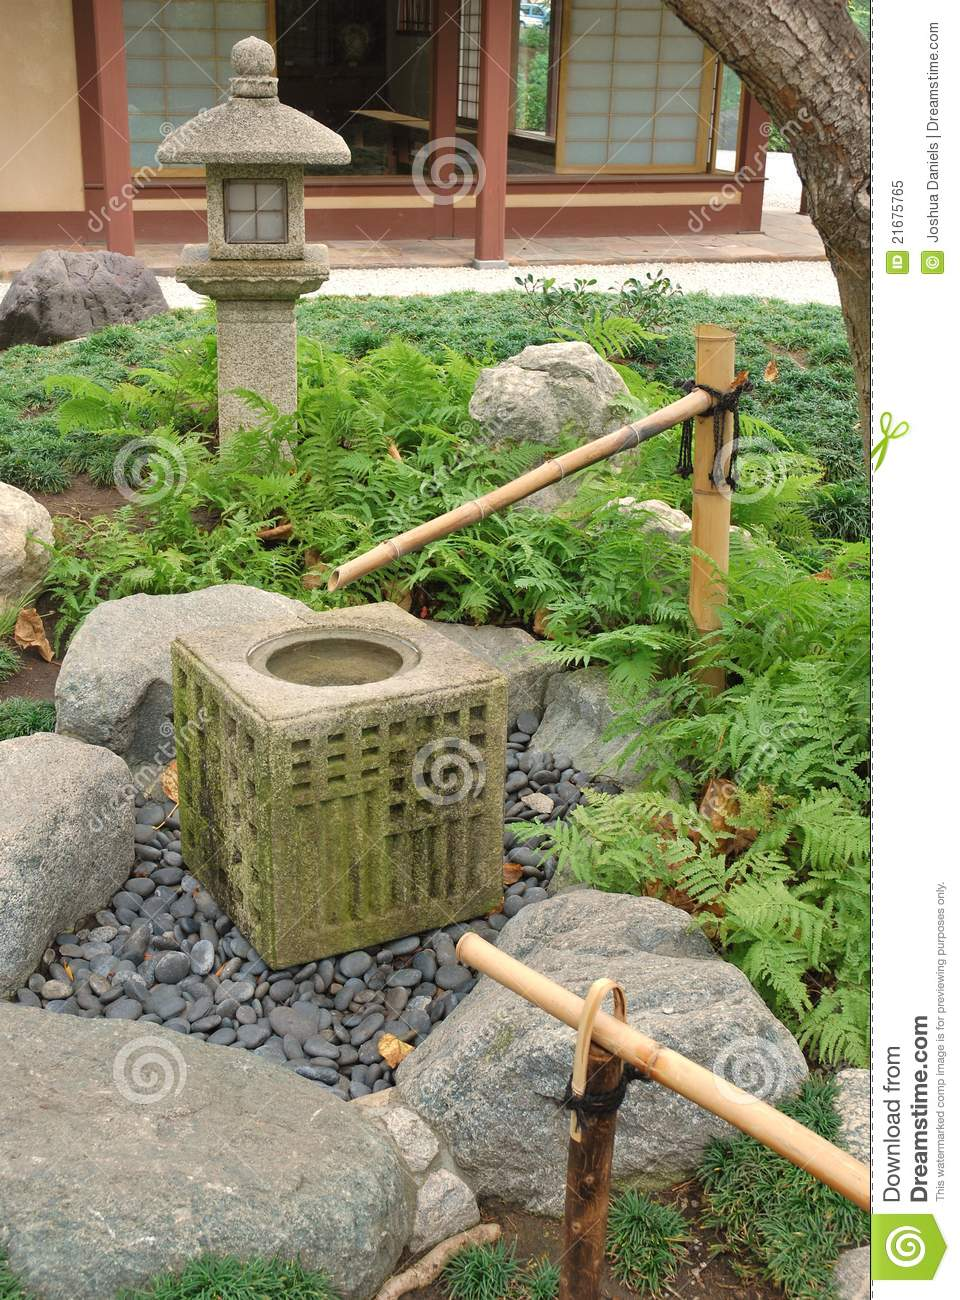 Japans het waterelement van de tuin royalty vrije stock foto afbeelding 21675765 - Critical elements for a backyard landscaping ...